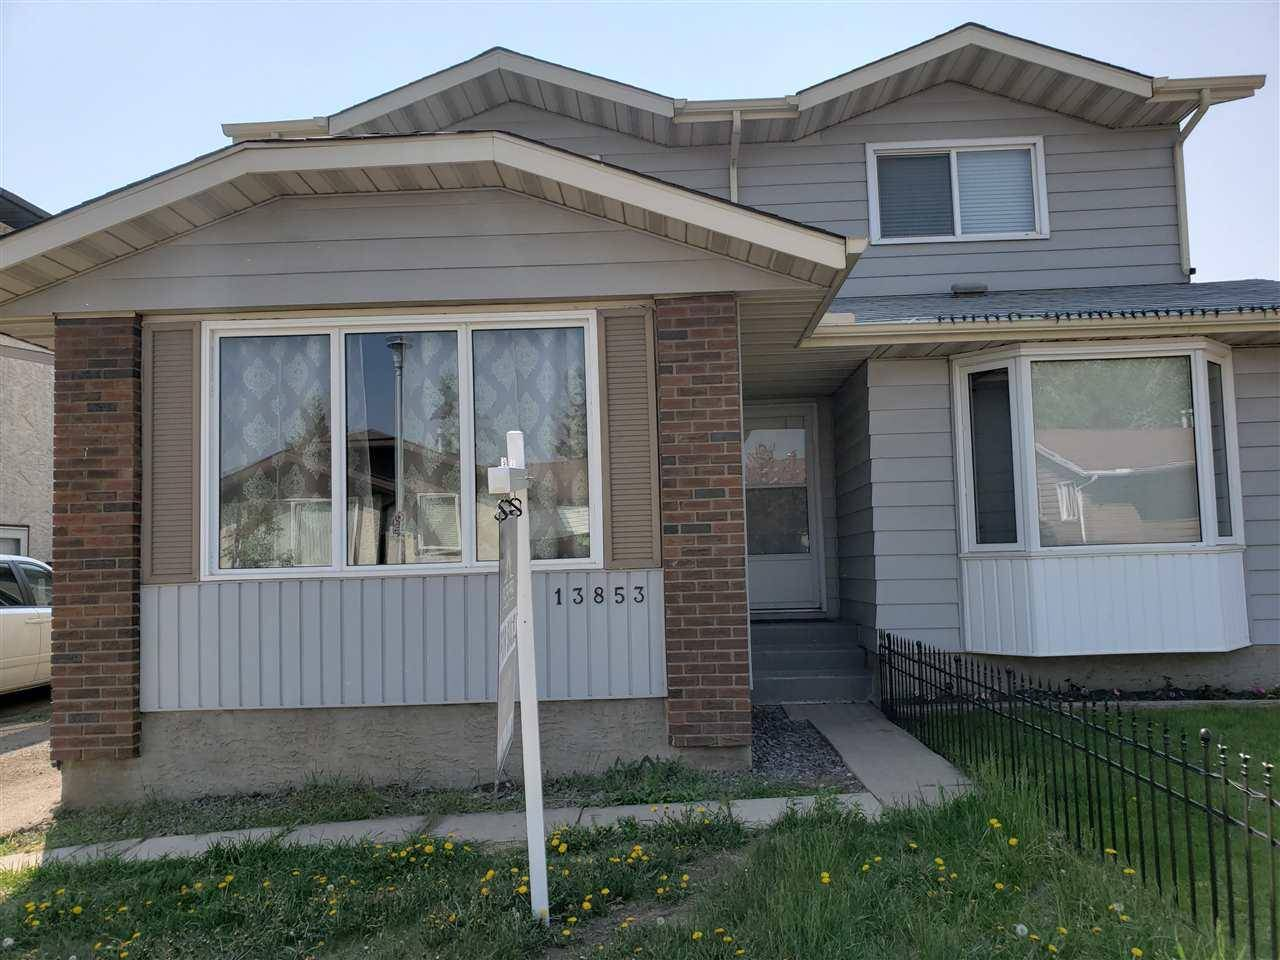 Townhouse for sale at 13853 114 St Nw Edmonton Alberta - MLS: E4156257